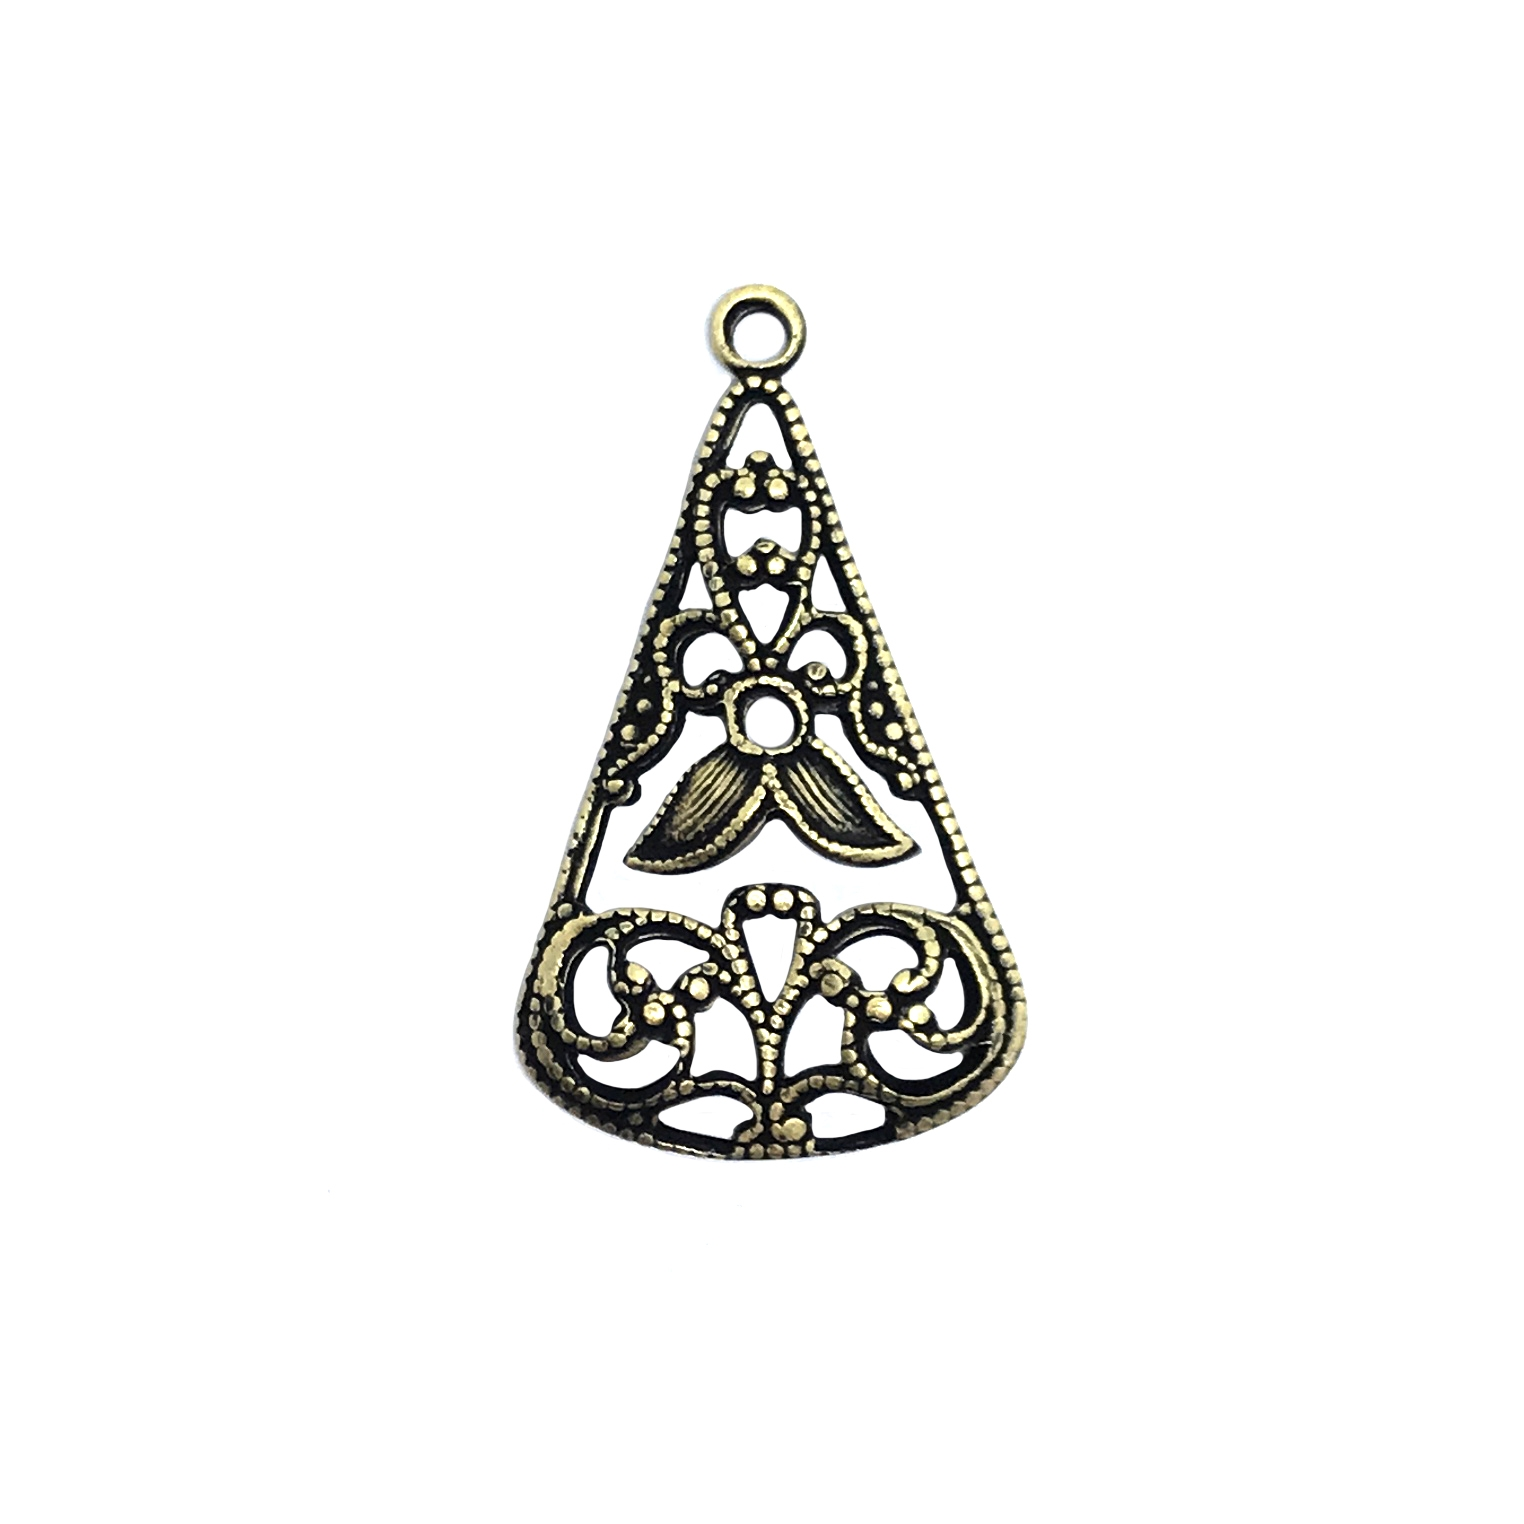 brass ear drops, brass pendant, brass ox, 01339, B'sue Boutiques, nickel free, US made, brass jewelry parts, filigree, vintage jewelry supplies, brass findings, vintage findings, Victorian jewelry, jewelry making, antique brass, earrings